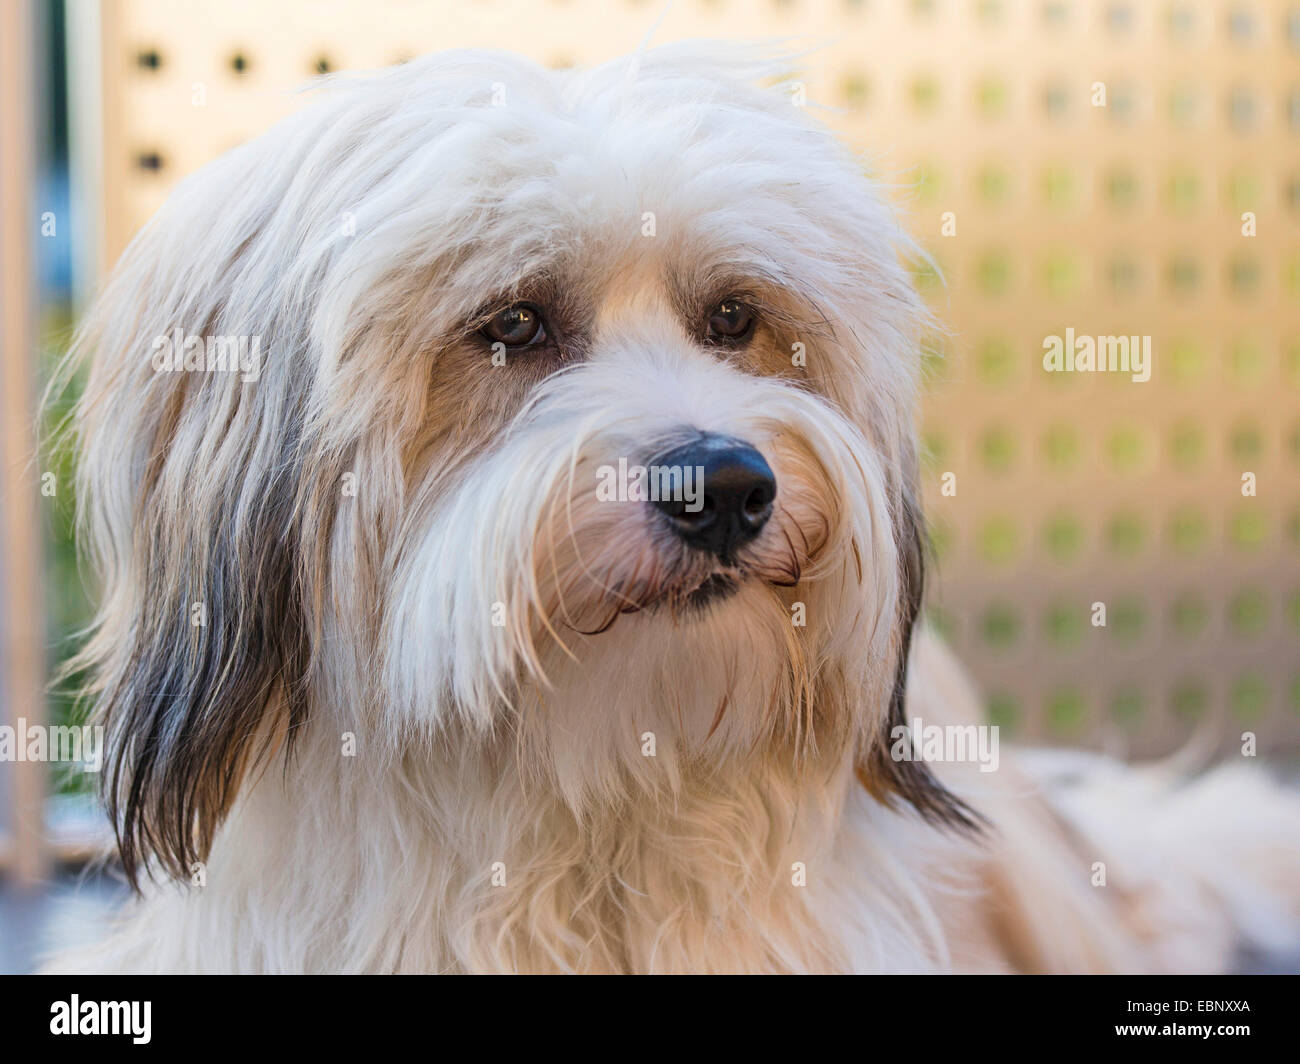 Tibetan Terrier, Tsang Apso, Dokhi Apso (Canis lupus f. familiaris), one year old bright sable and white male, portrait, - Stock Image